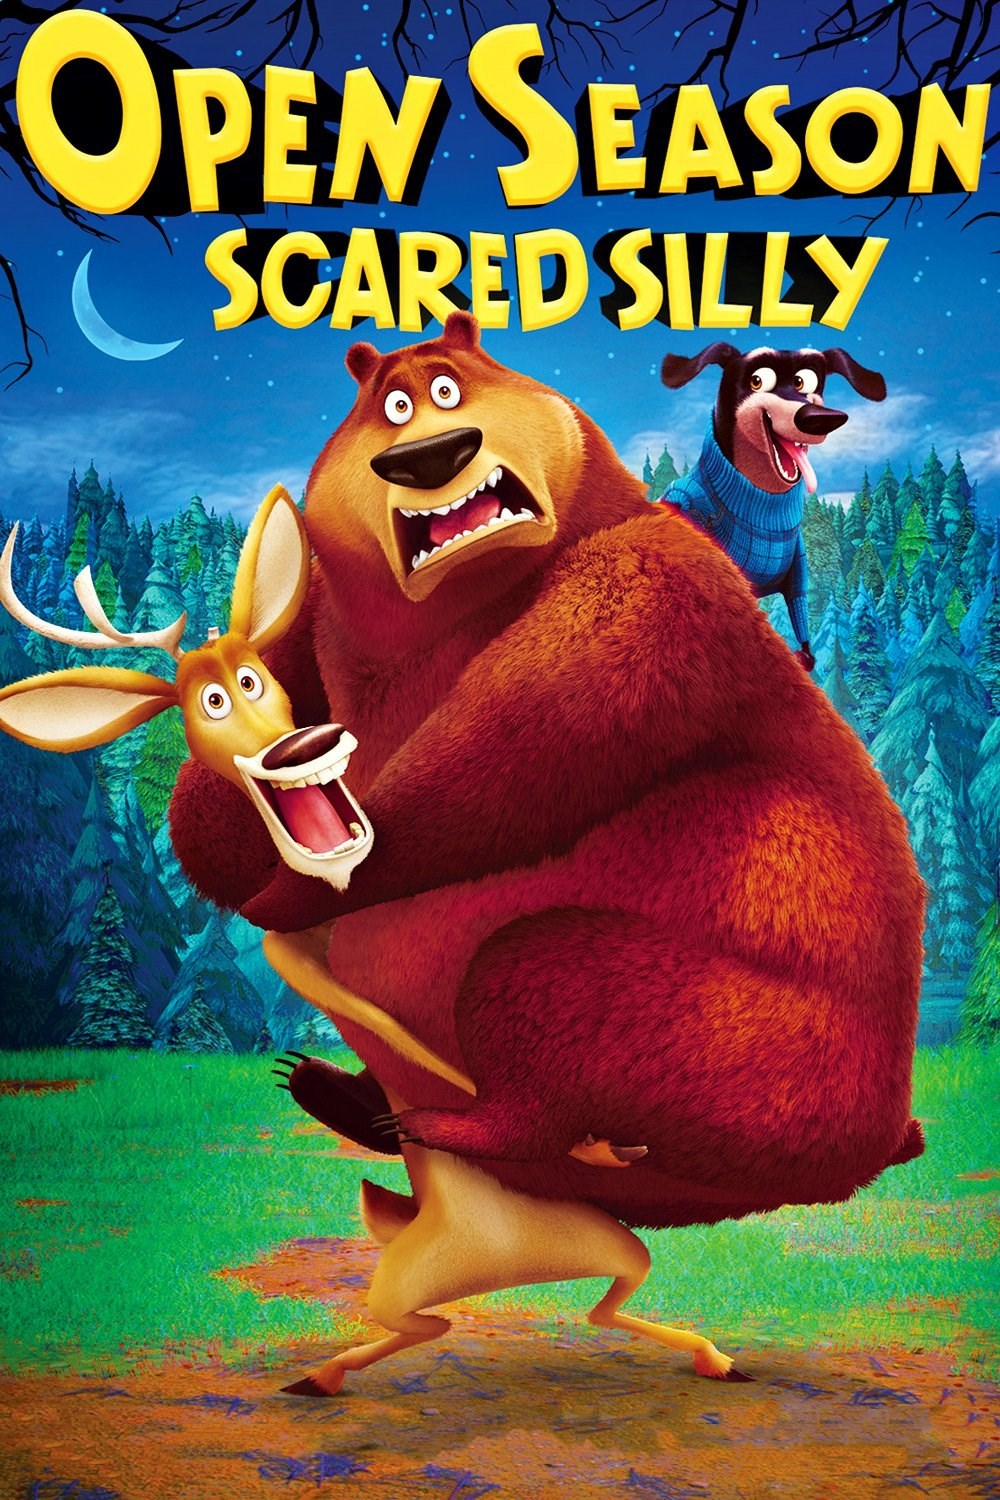 ... Season: Scared Silly 2015 – Watch Movie and TV Show PubFilm HD Free